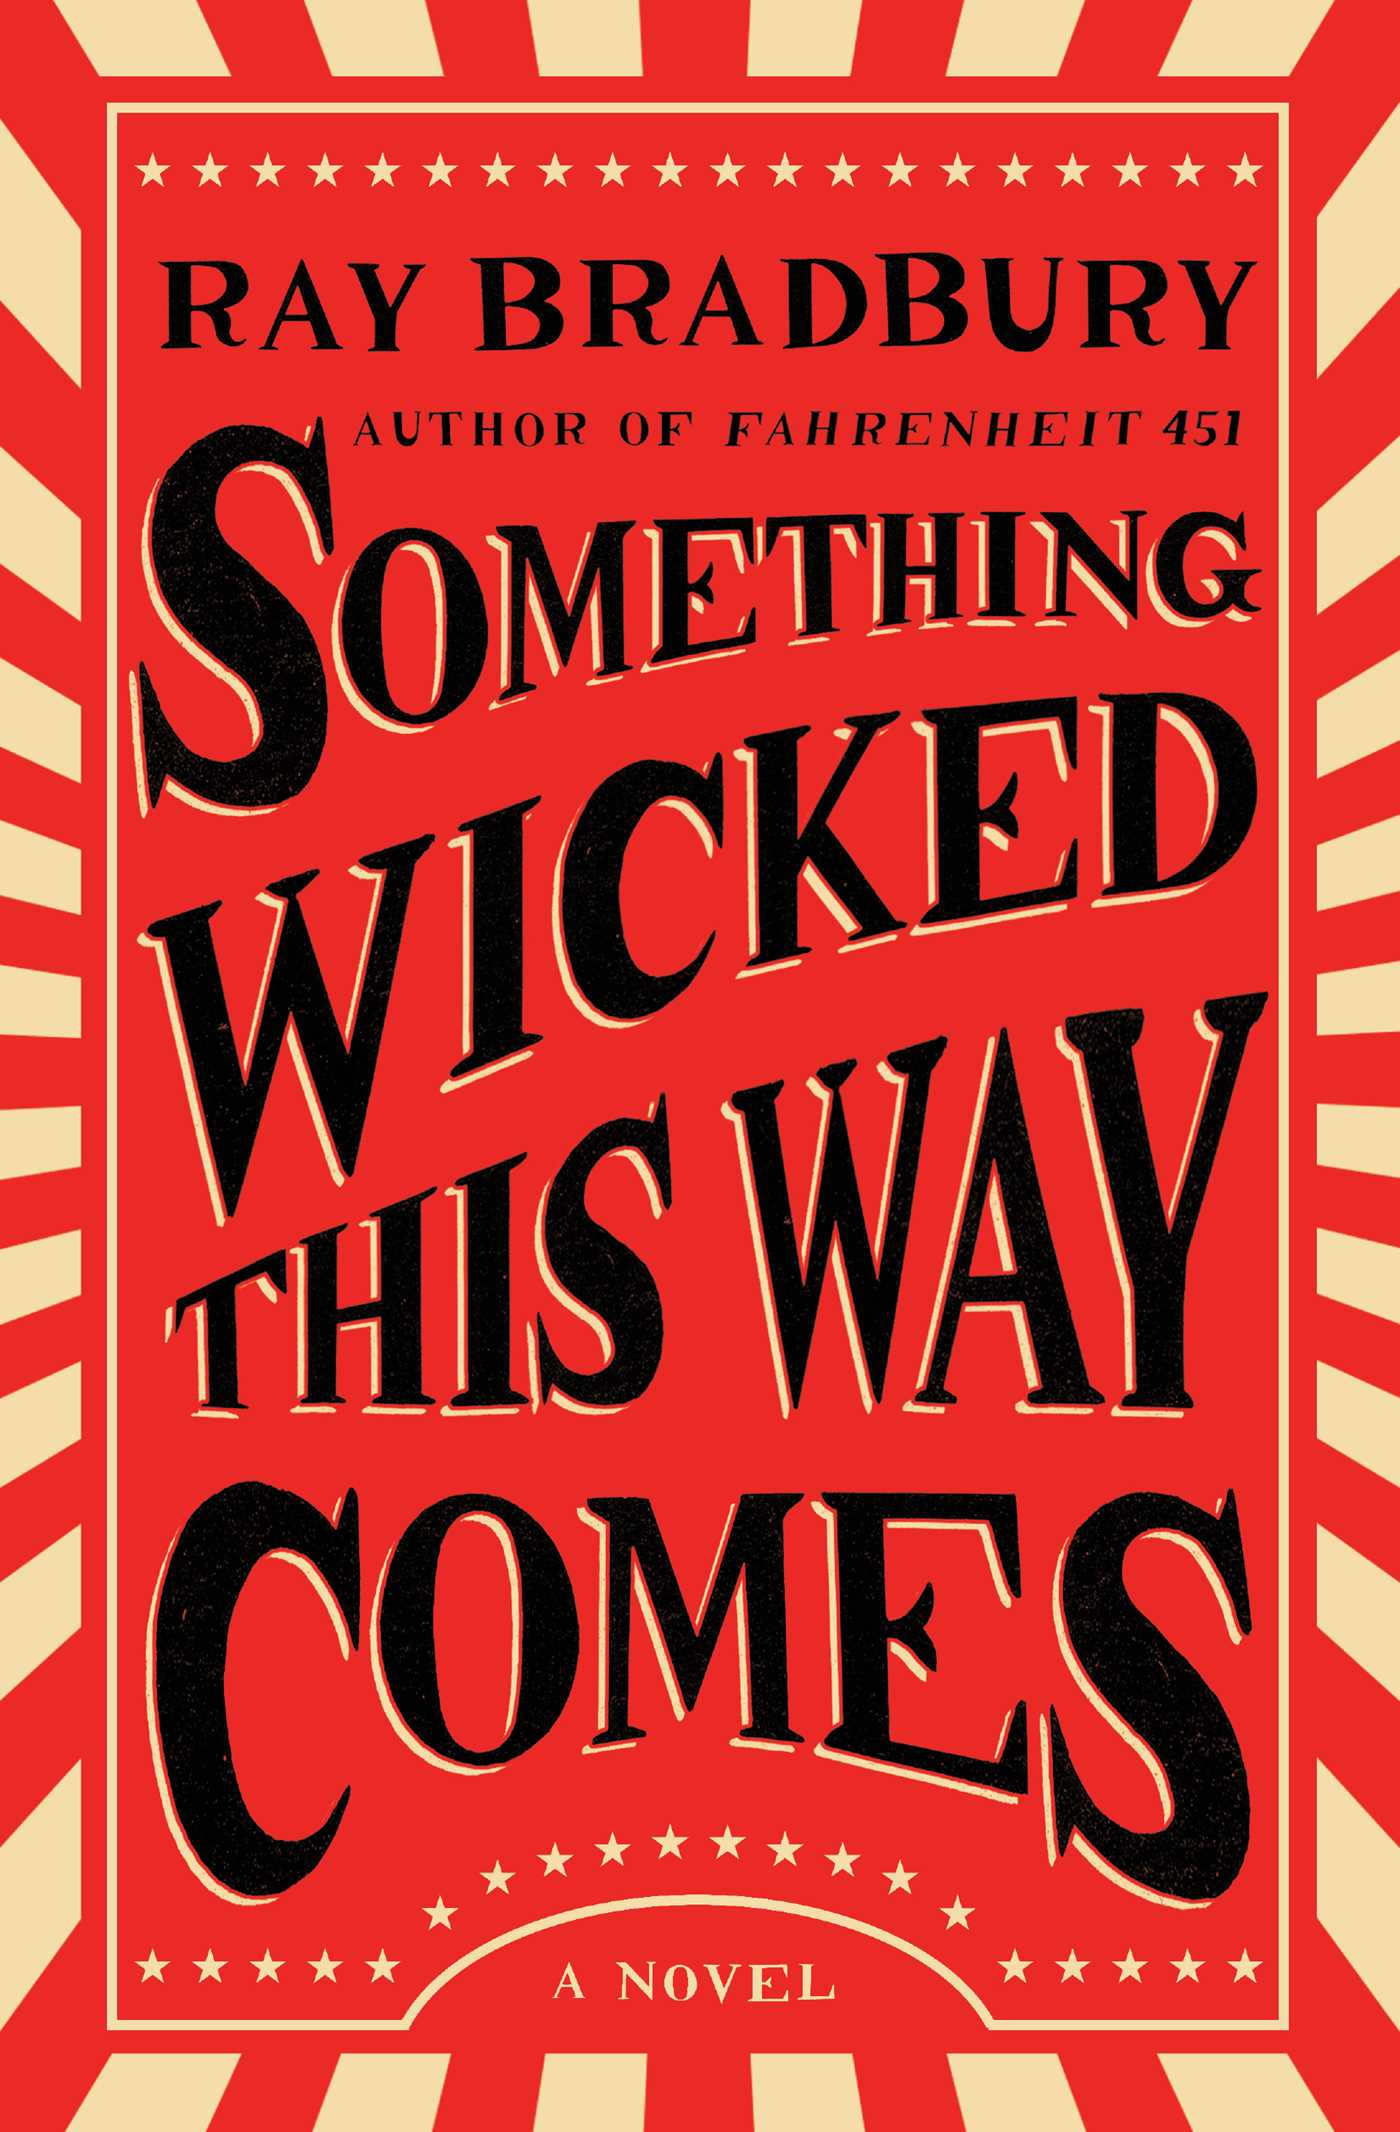 something wicked this way comes essays Unlike most editing & proofreading services, we edit for everything: grammar, spelling, punctuation, idea flow, sentence structure, & more get started now.